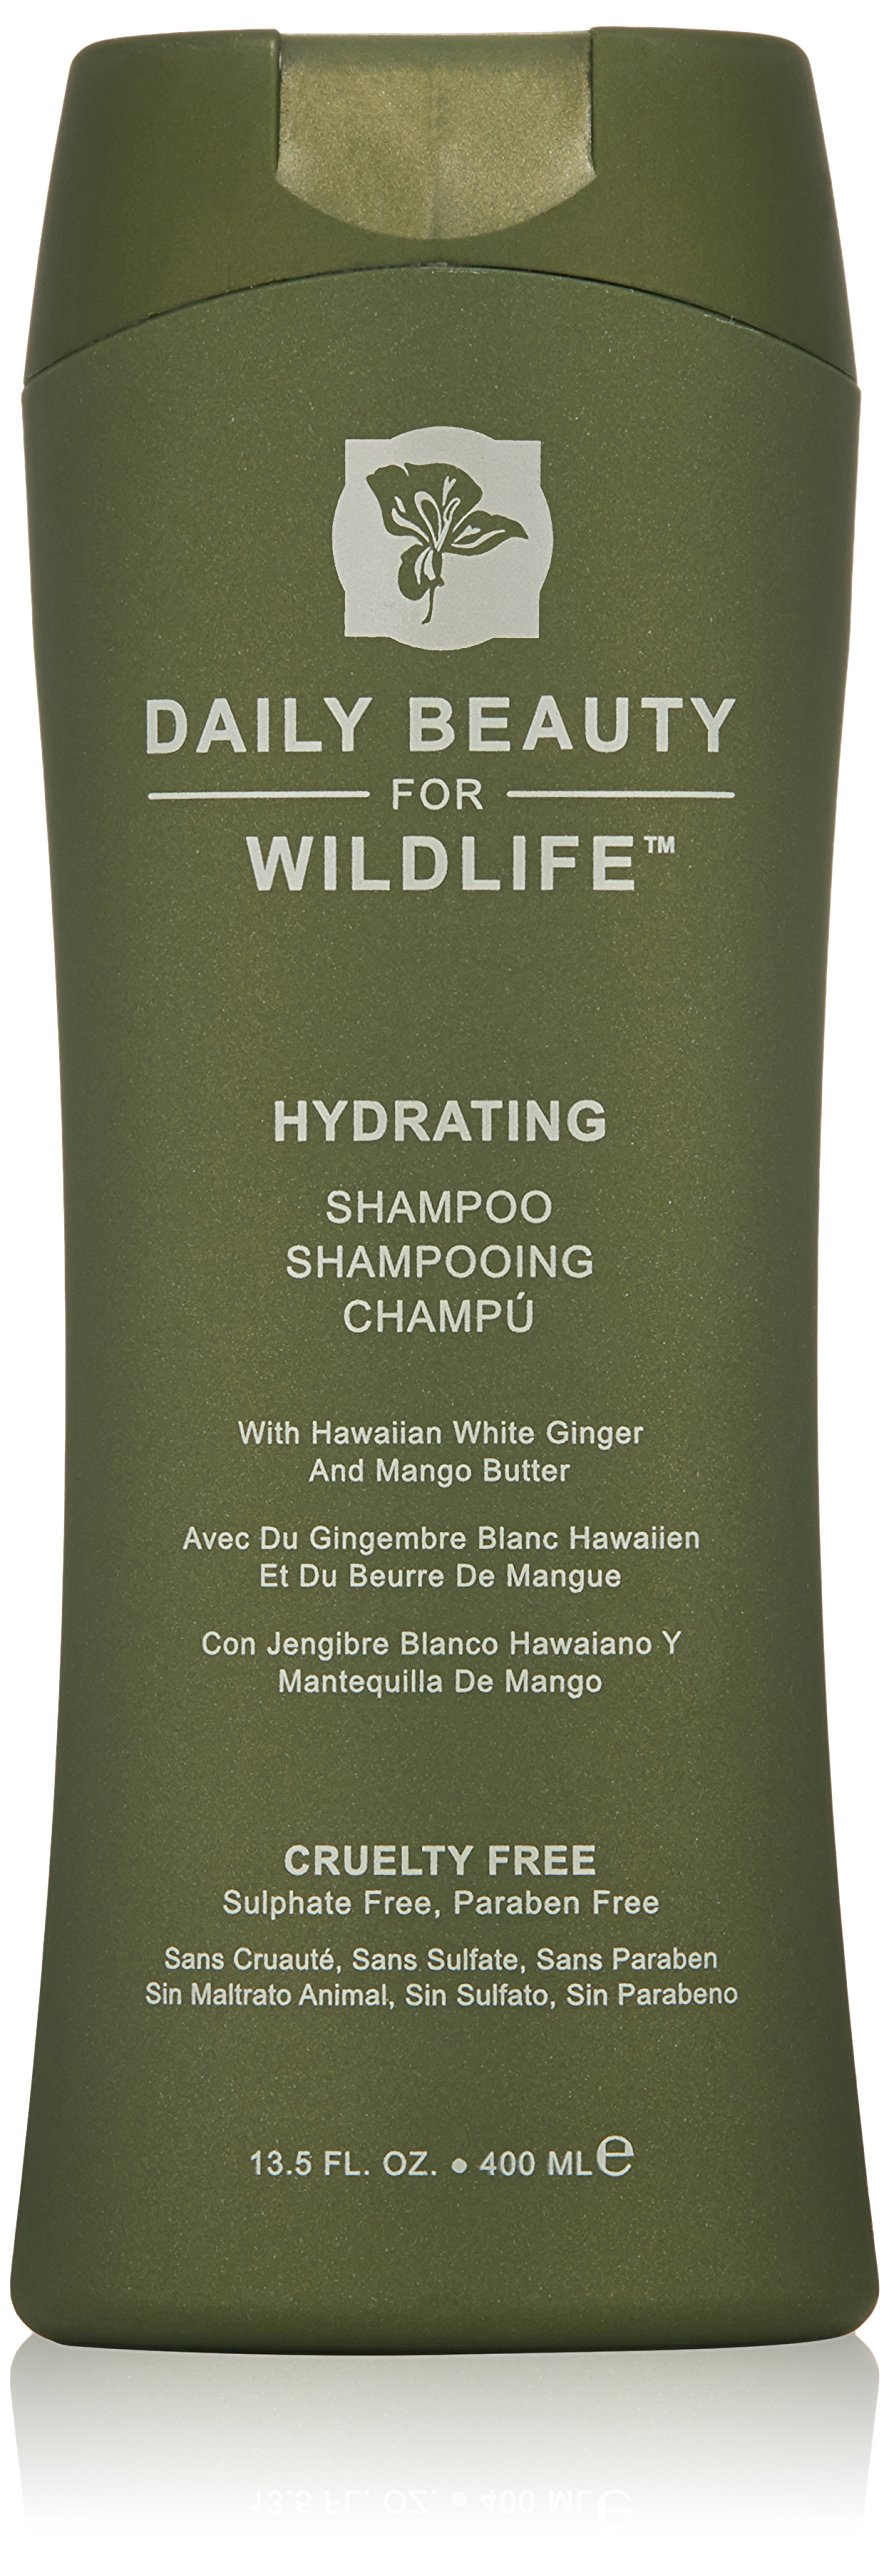 FHI Brands Daily Beauty for Wildlife Hydrating Shampoo